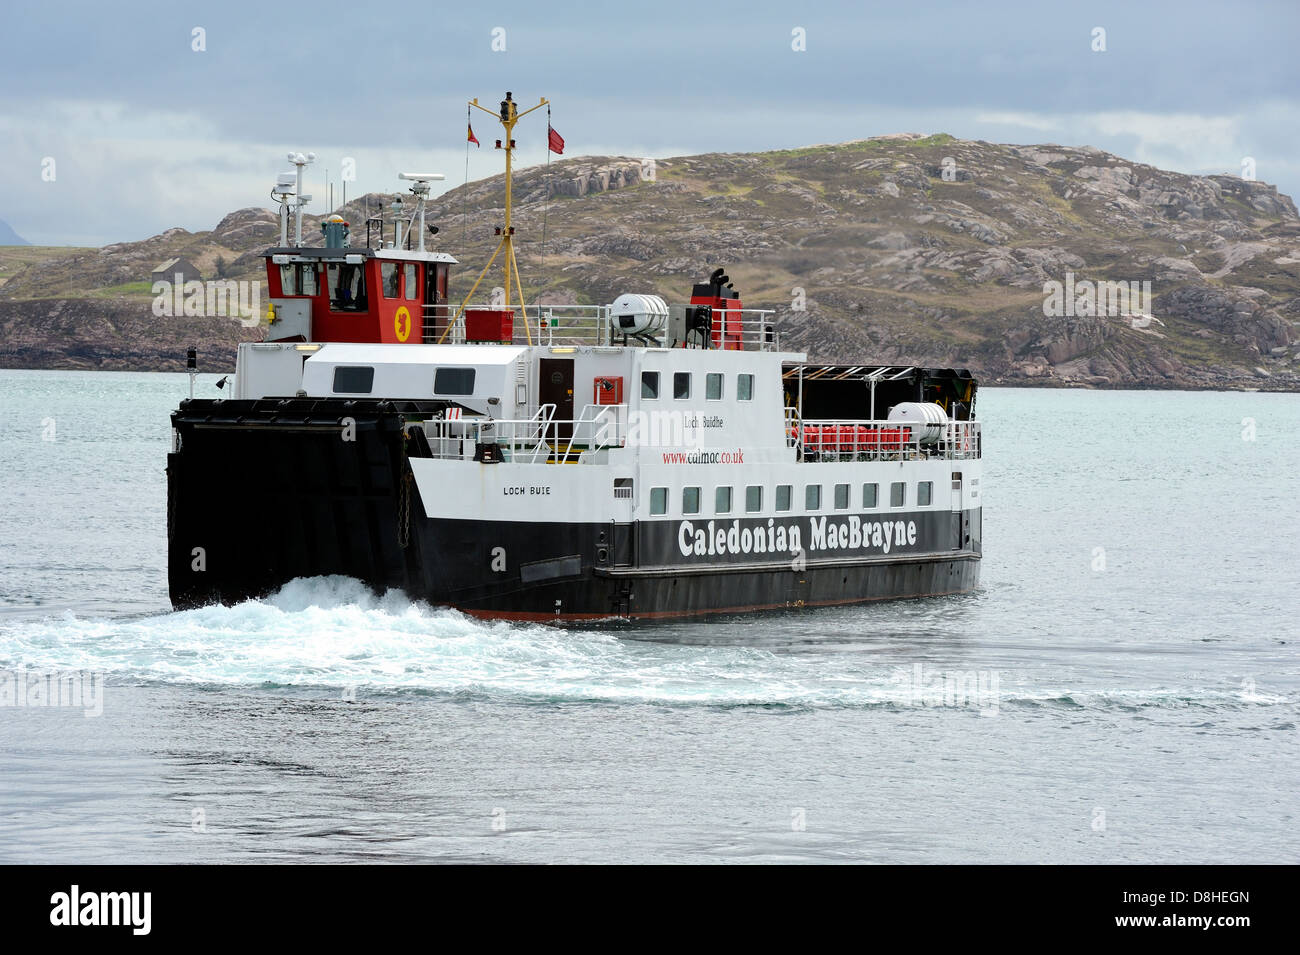 The loch buie ferry transporting tourist and islanders across the sound of iona from iona to the isle of mull. - Stock Image